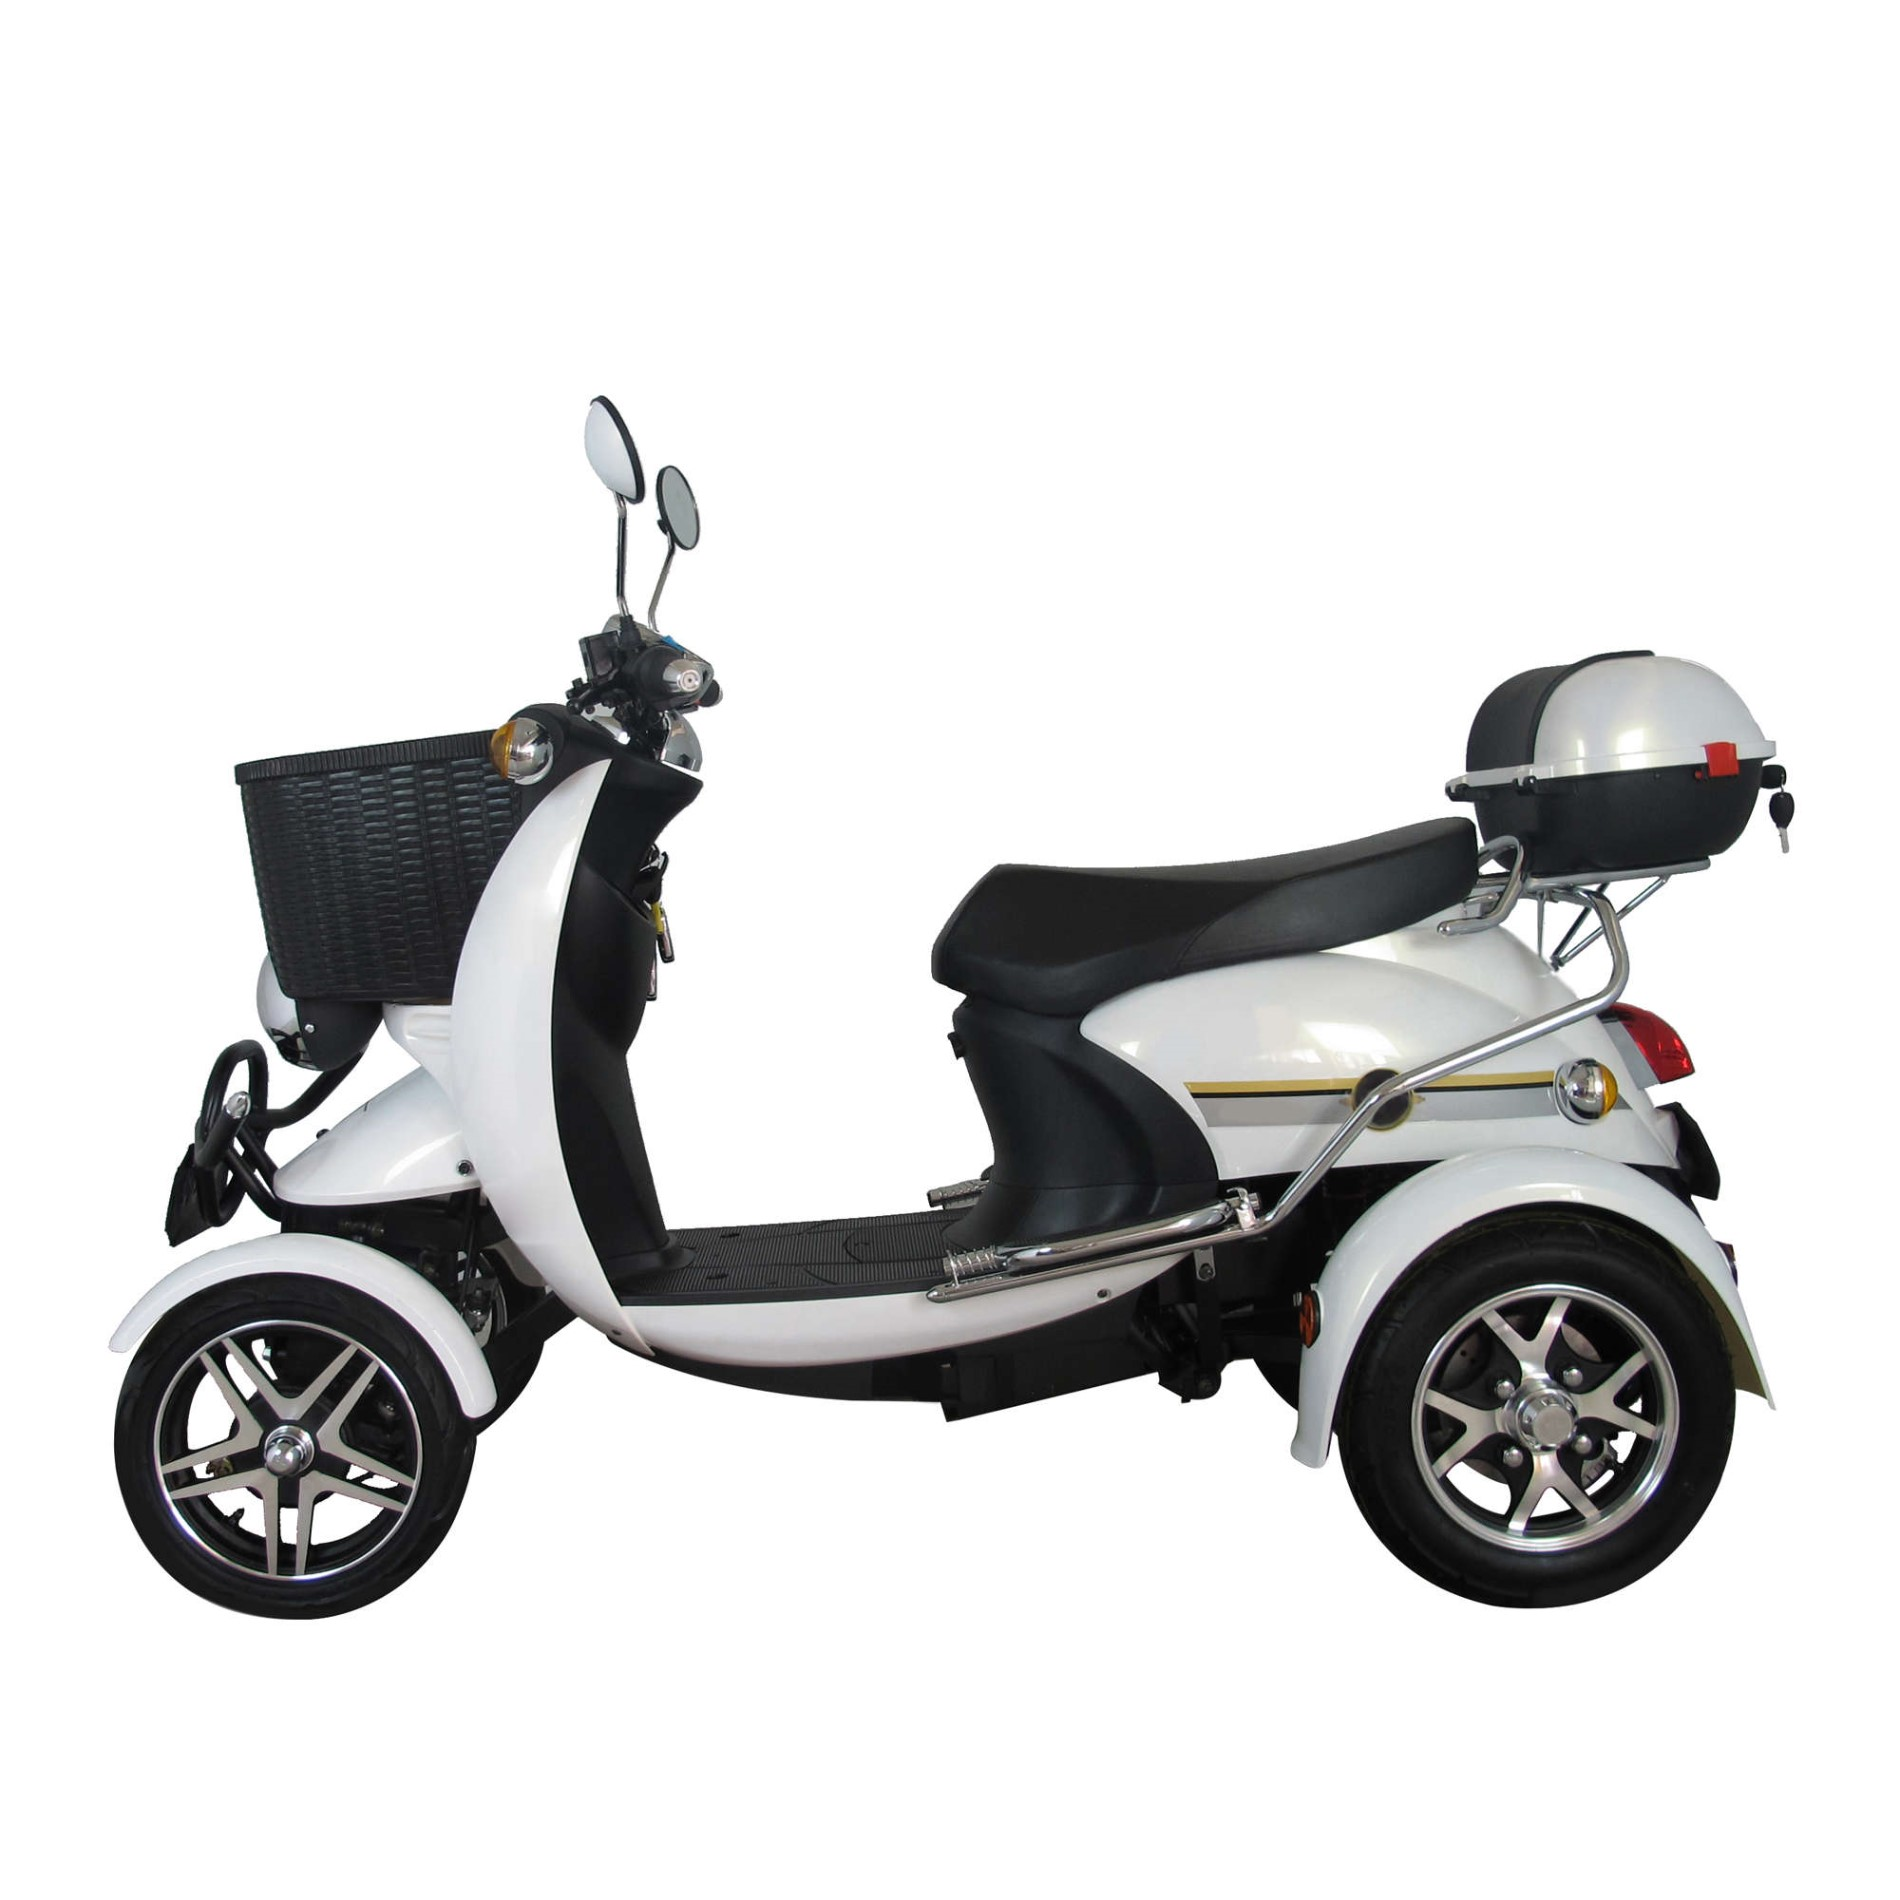 High quality Lightweight Mobility Scooter 4 Wheels Quotes,China Lightweight Mobility Scooter 4 Wheels Factory,Lightweight Mobility Scooter 4 Wheels Purchasing